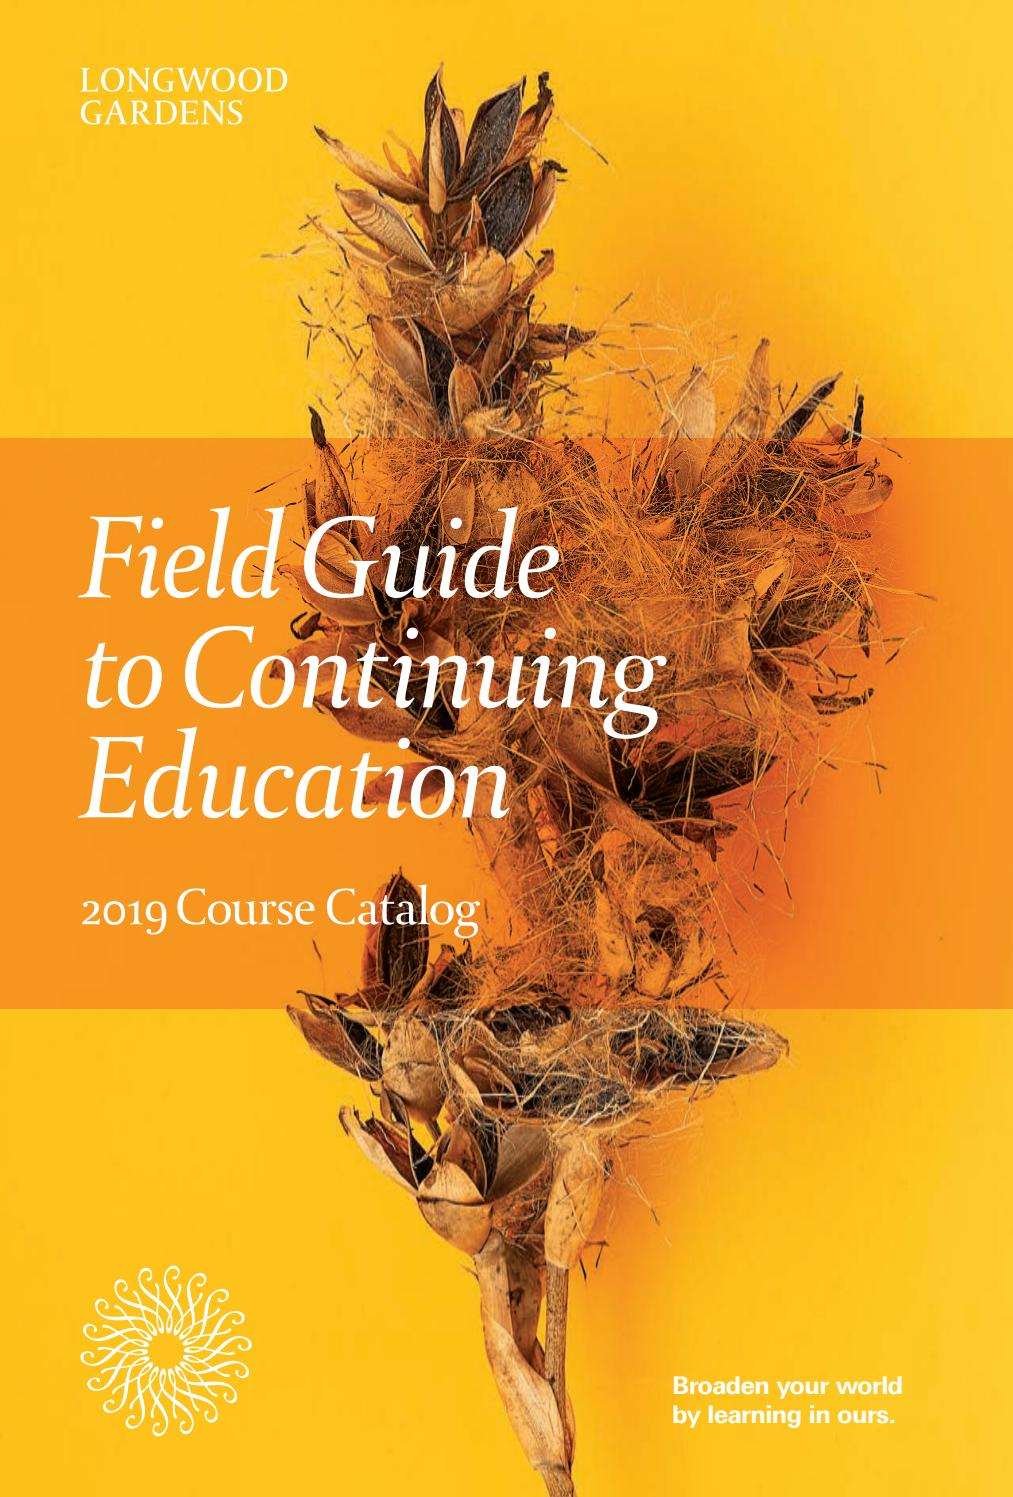 hight resolution of field guide to continuing education 2019 course catalog by longwood gardens issuu